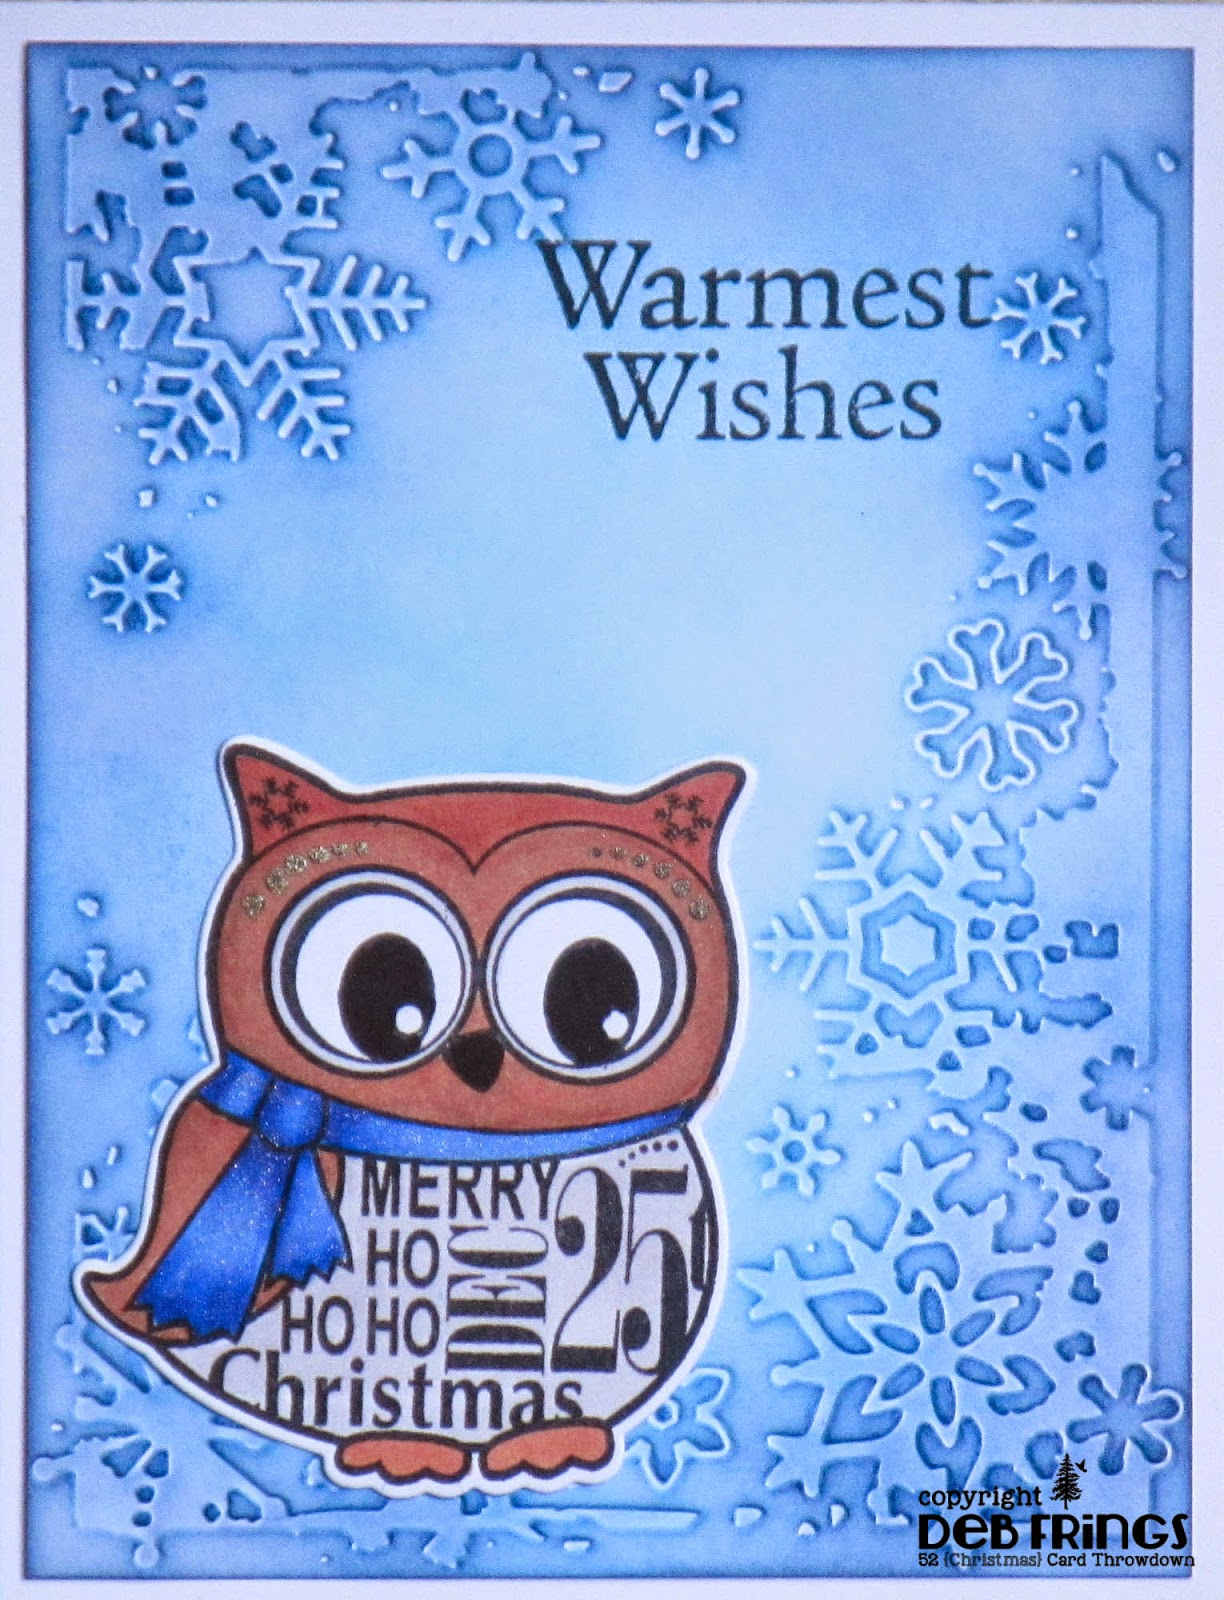 Warmest Wishes - photo by Deborah Frings - Deborah's Gems